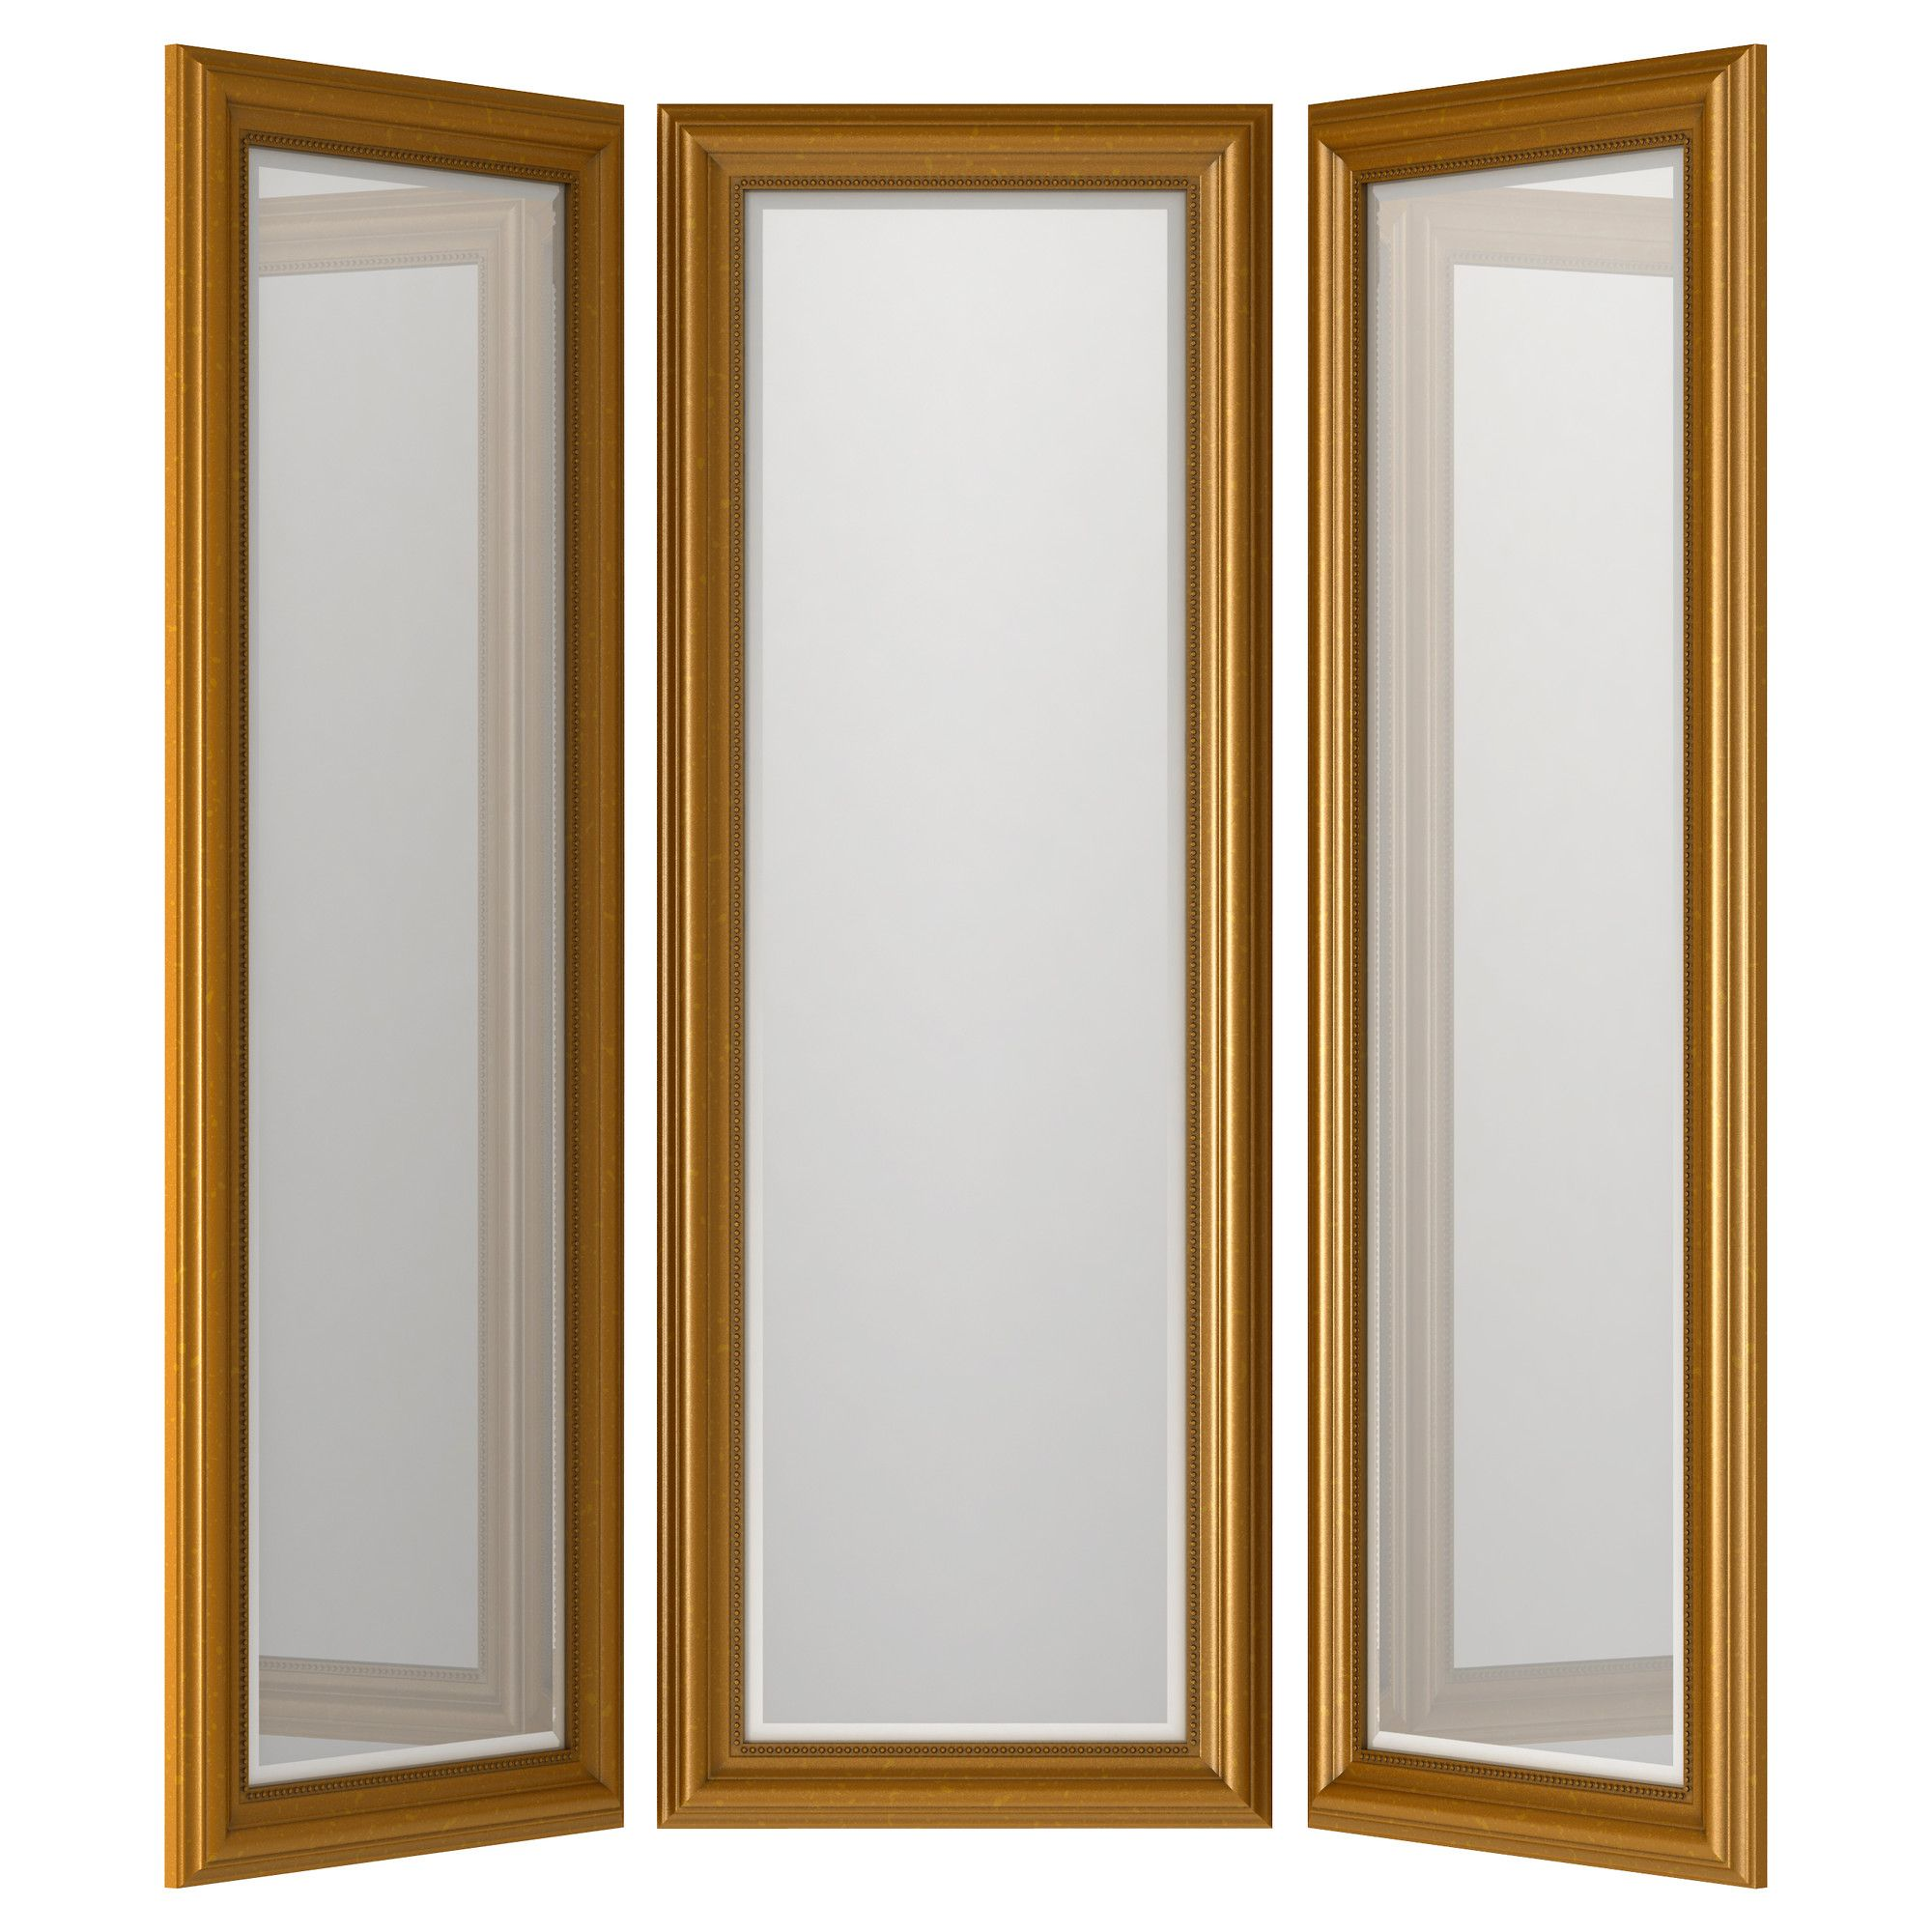 Great LEVANGER Mirror   IKEA. On Hinges So You Can See All Angles Before You Head  Out The Door!